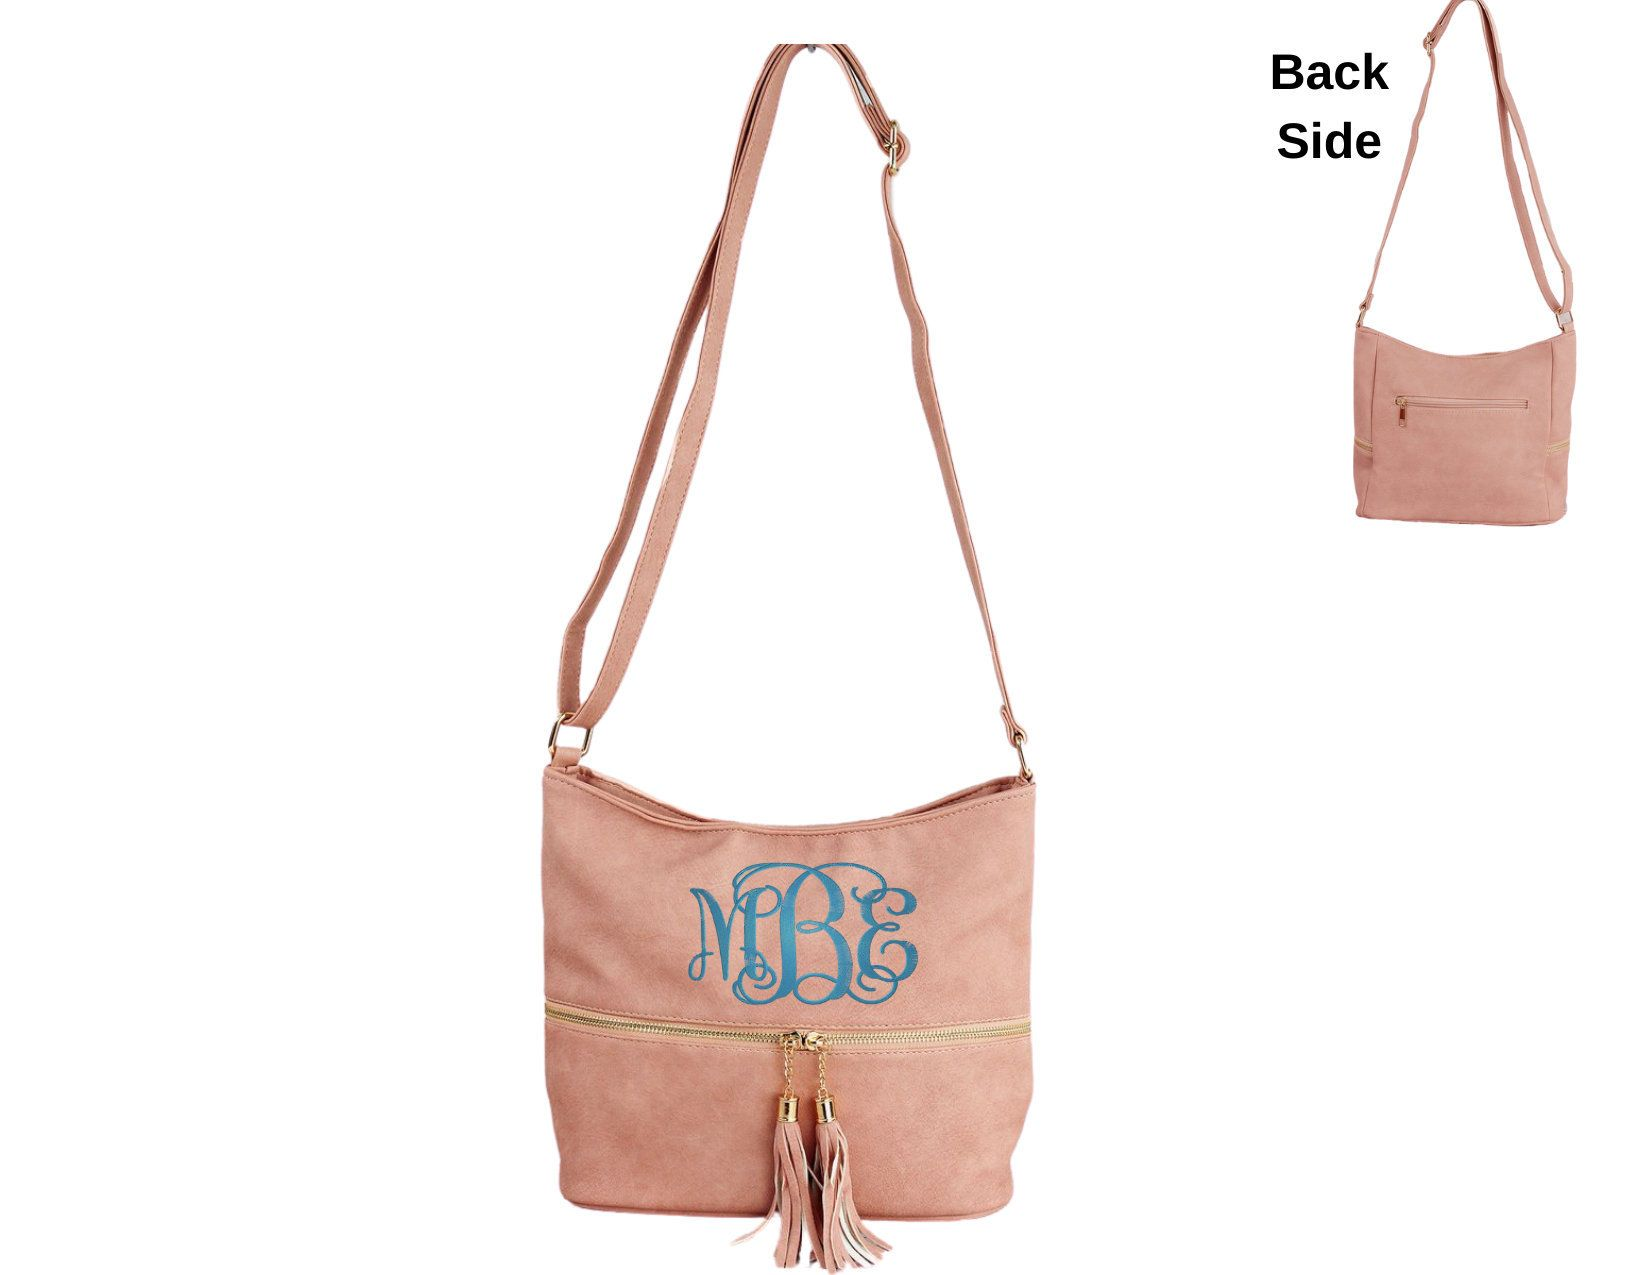 Gift For Tween Gift For Daughter Gift Ideas For Girls Monogrammed Crossbody Purse Leather Purse Gift For Teen